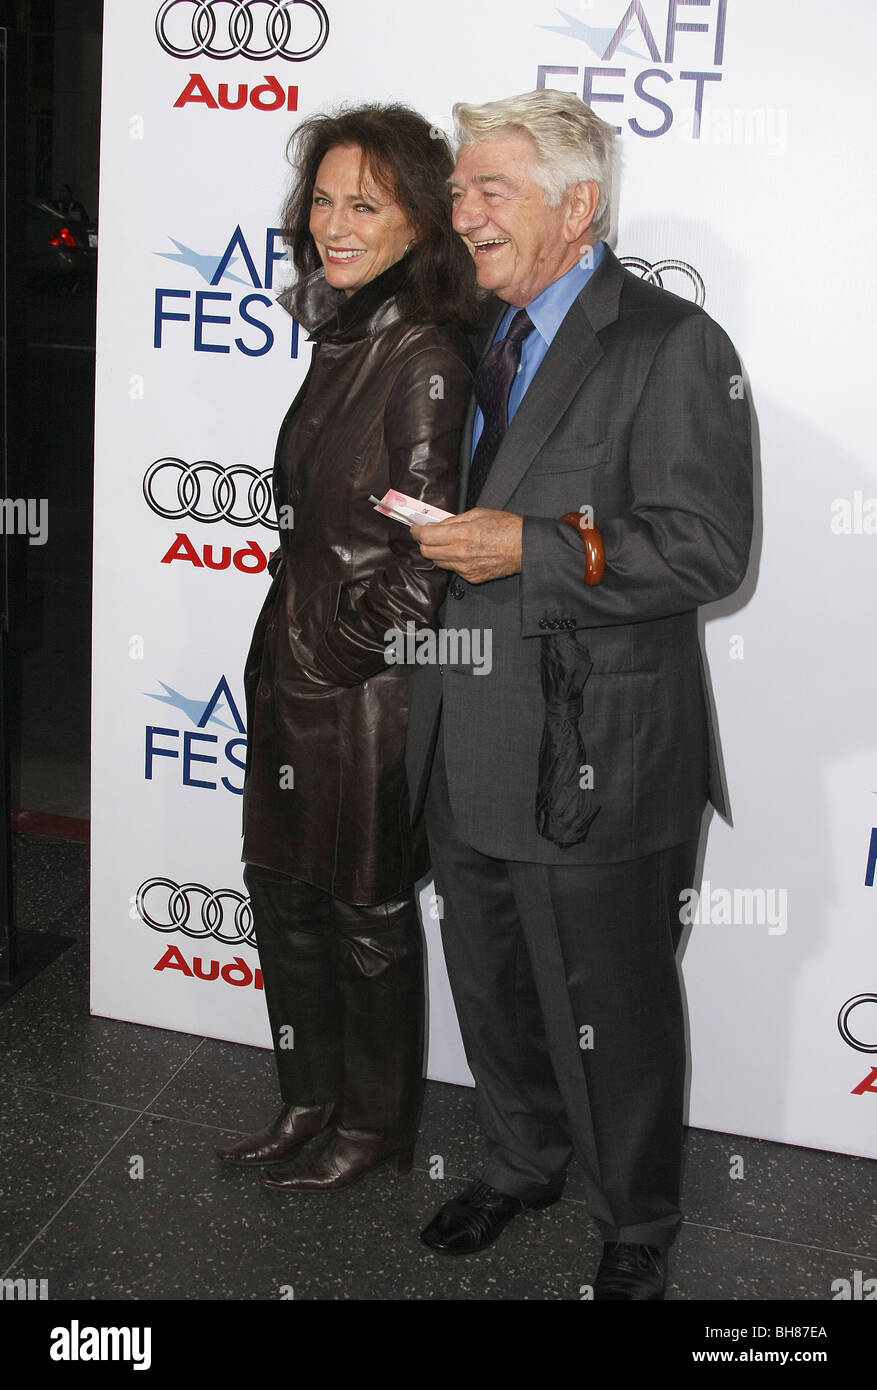 JACQUELINE BISSET  SEYMOUR CAS ACTORS HOLLYWOOD  LOS ANGELES  CA  USA 01/11/2008 - Stock Image